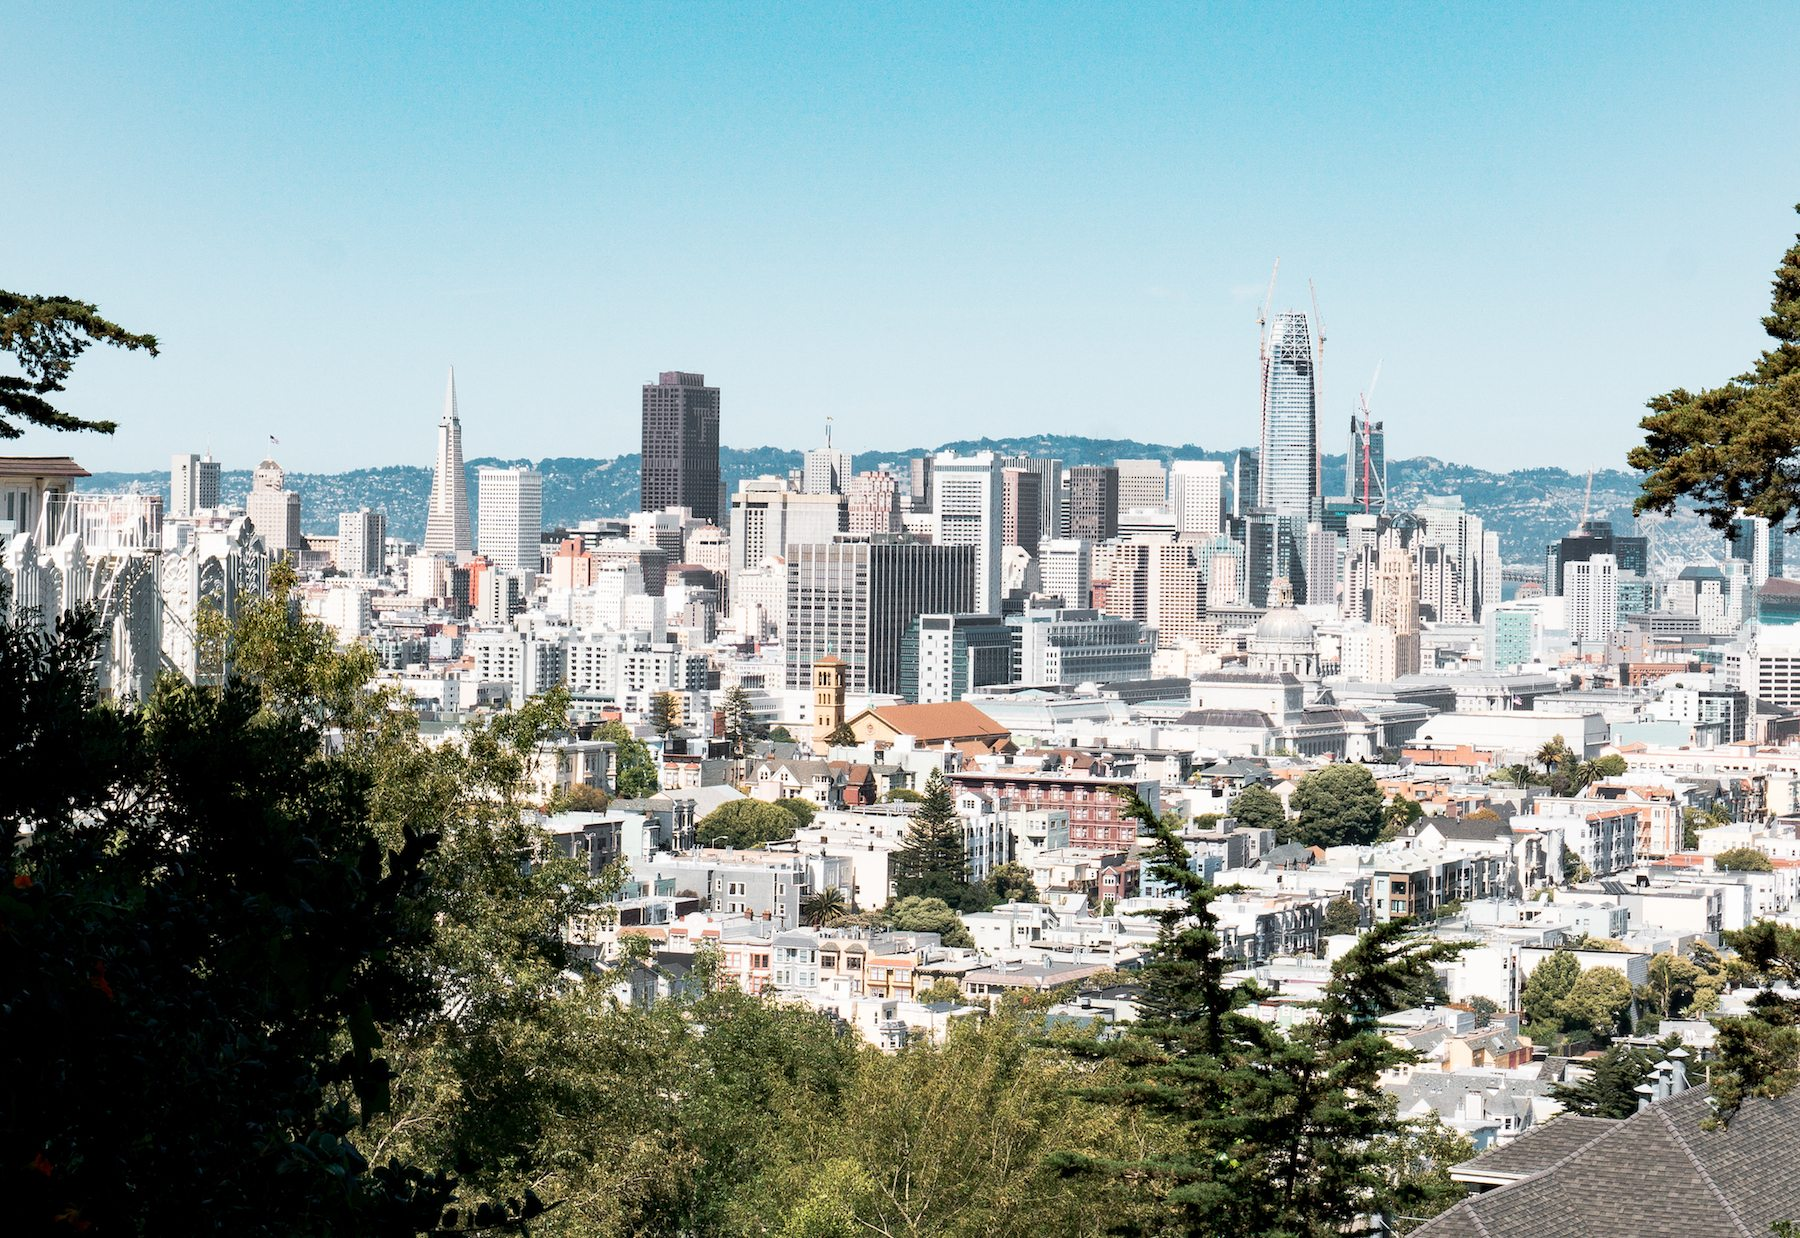 View of the City from atop Buena Vista Park. Photo: Justin Wong, 49miles.com